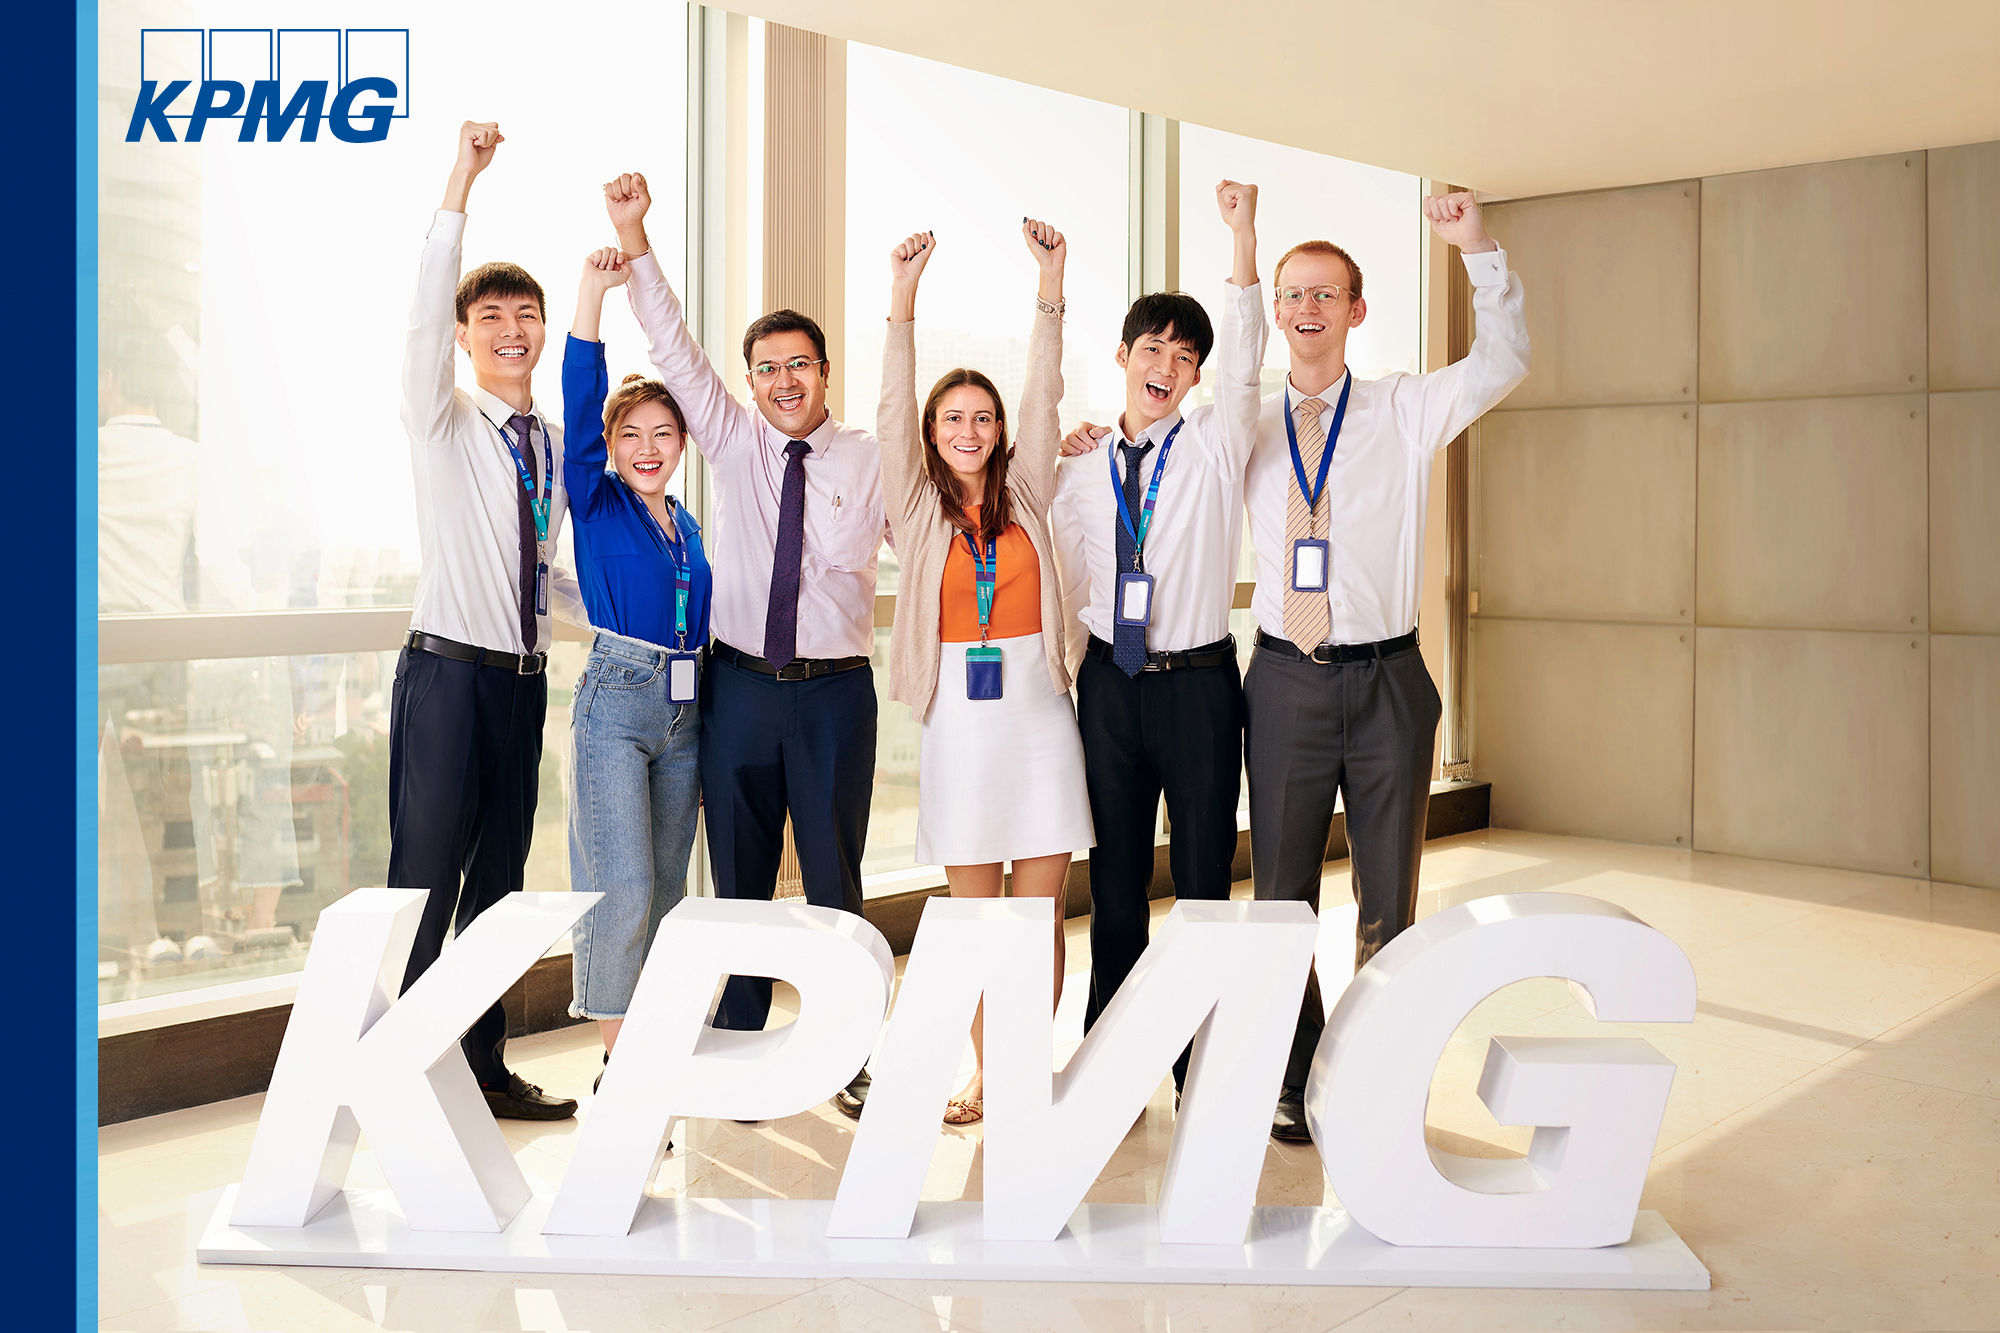 chup-anh-profile-cong-ty-kpmg-3.jpg